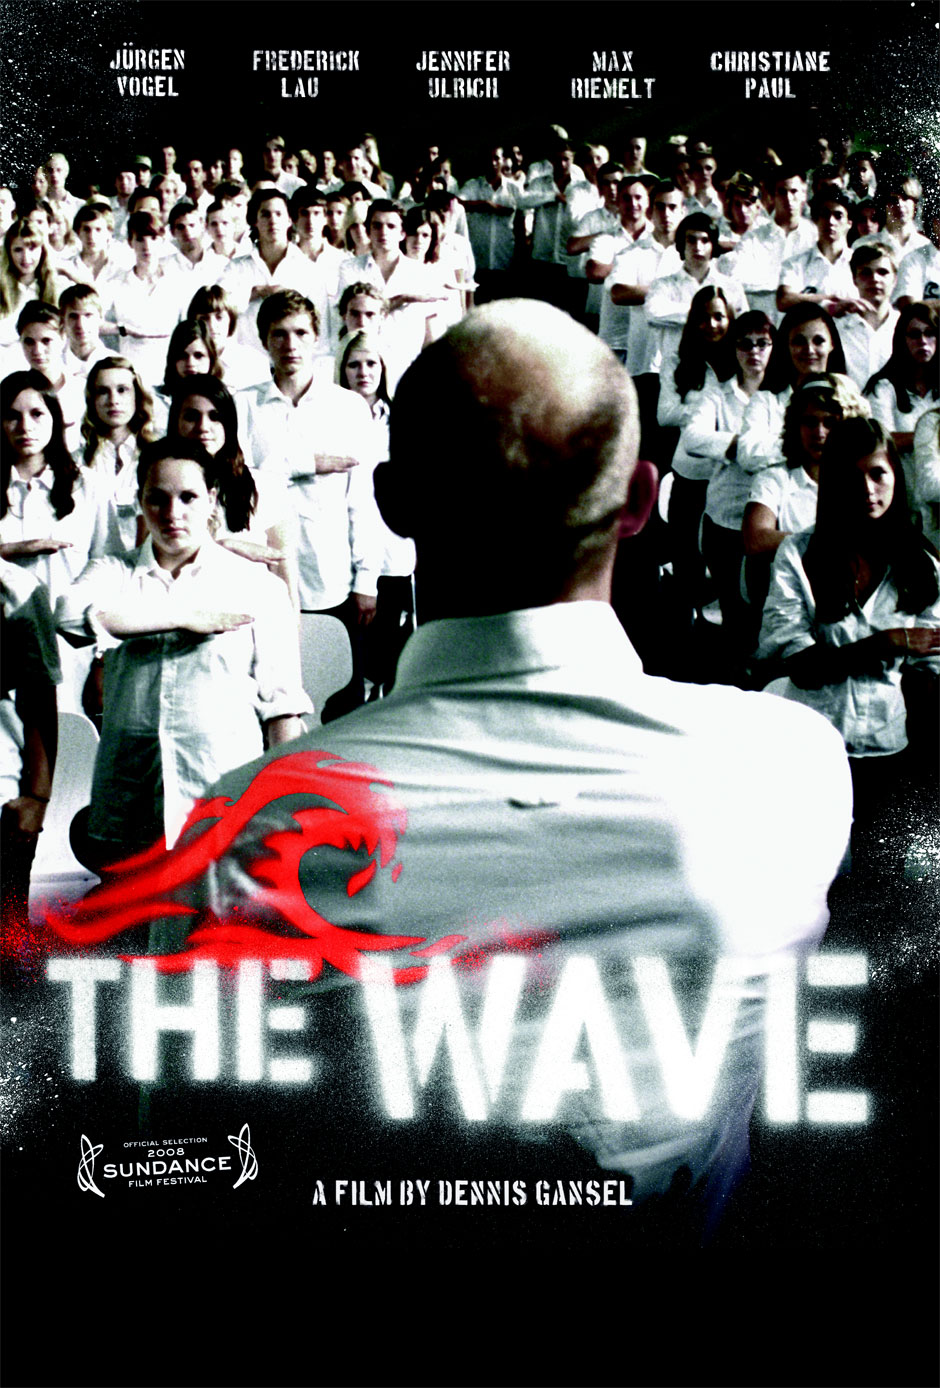 Germans March to the Beat in the new Trailer for 'The Wave'